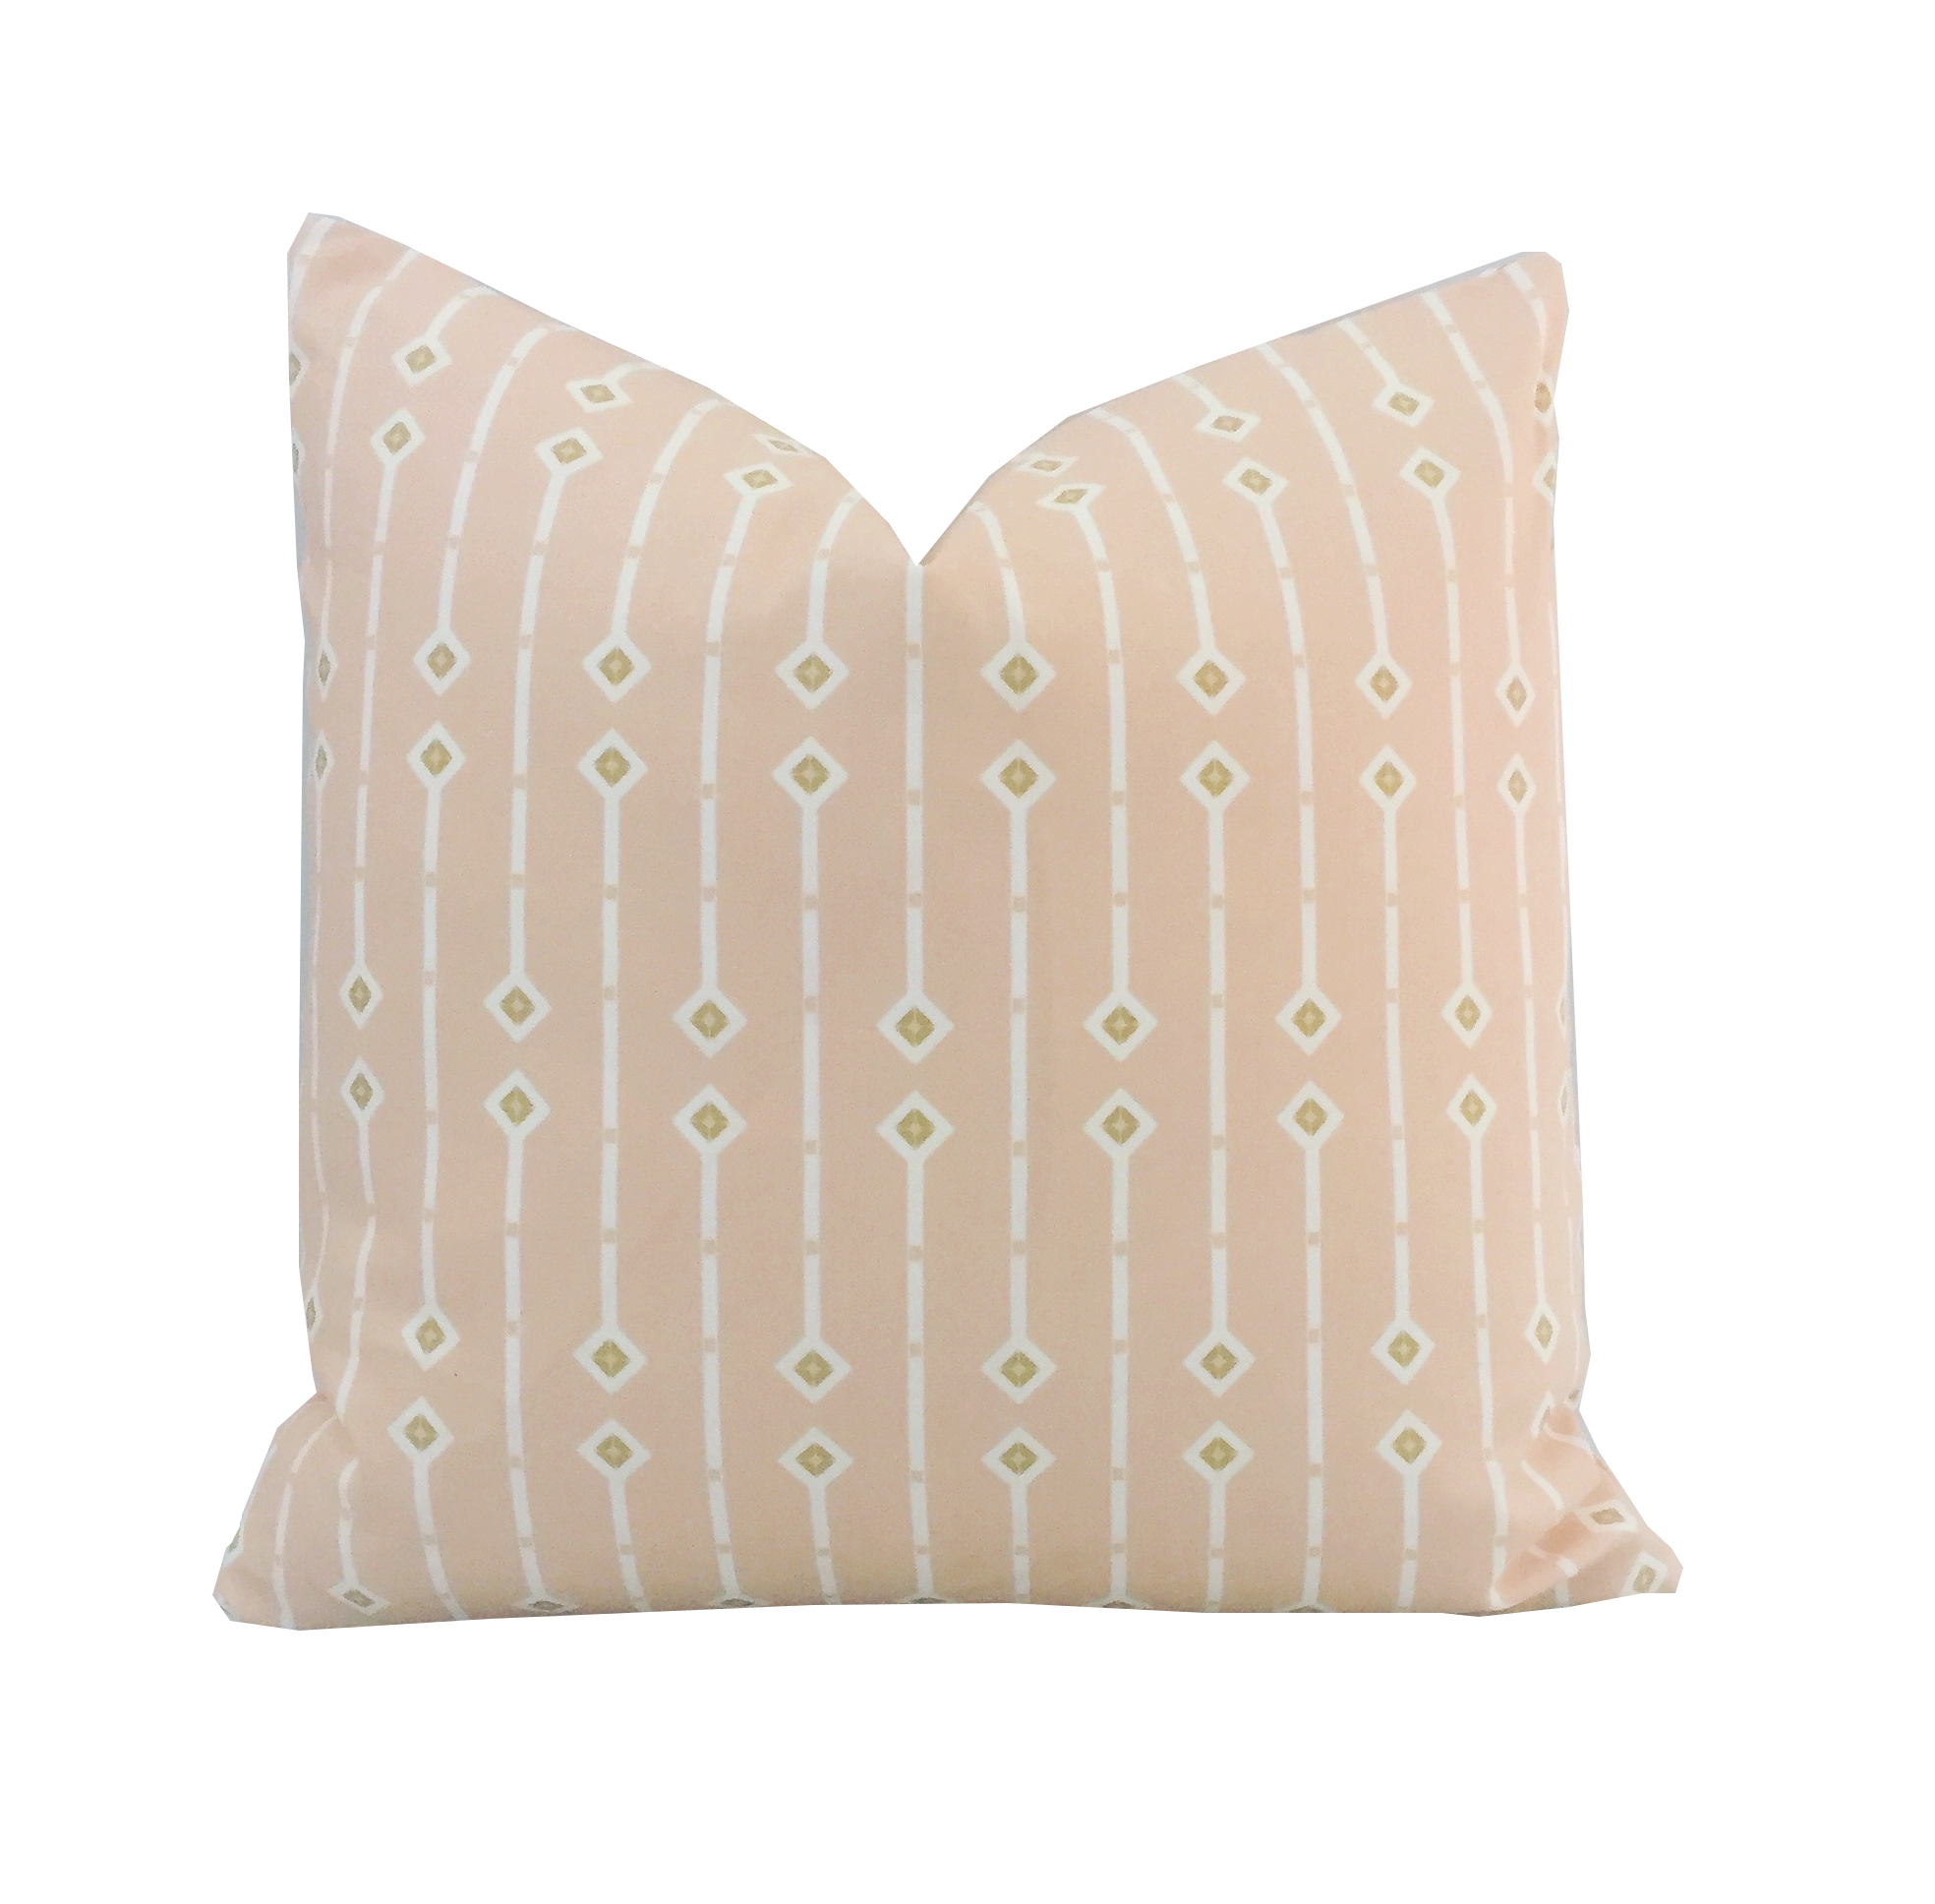 Square Folly Pier Pillow